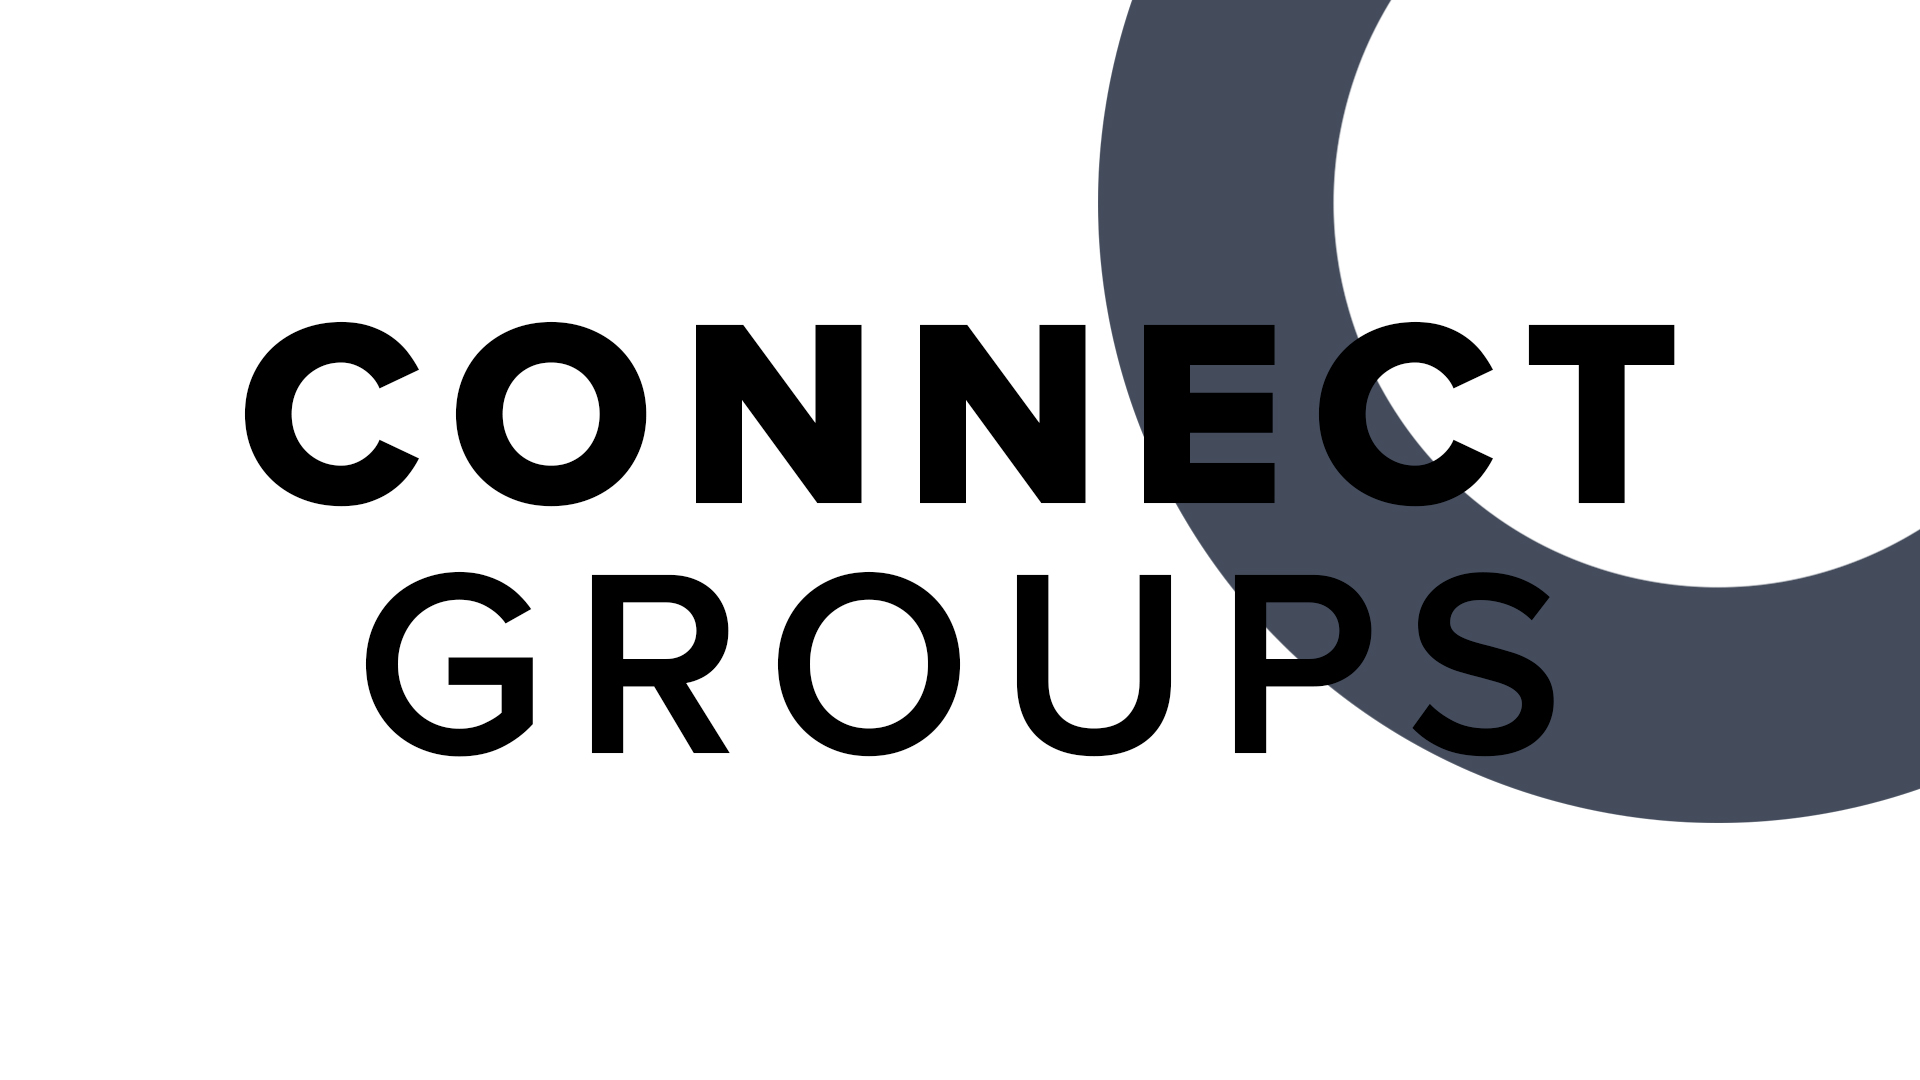 connect groups (CREWs) - Connect Groups (or Crews) are interest-based groups that are planned and organized by people who call New Hope their church home. These groups are for people who are looking to hang out with other Jesus people that have similar passions and interests!We think Connect Groups are a great way to make meaningful connections with other people here at New Hope and a fun way to find your Crew!